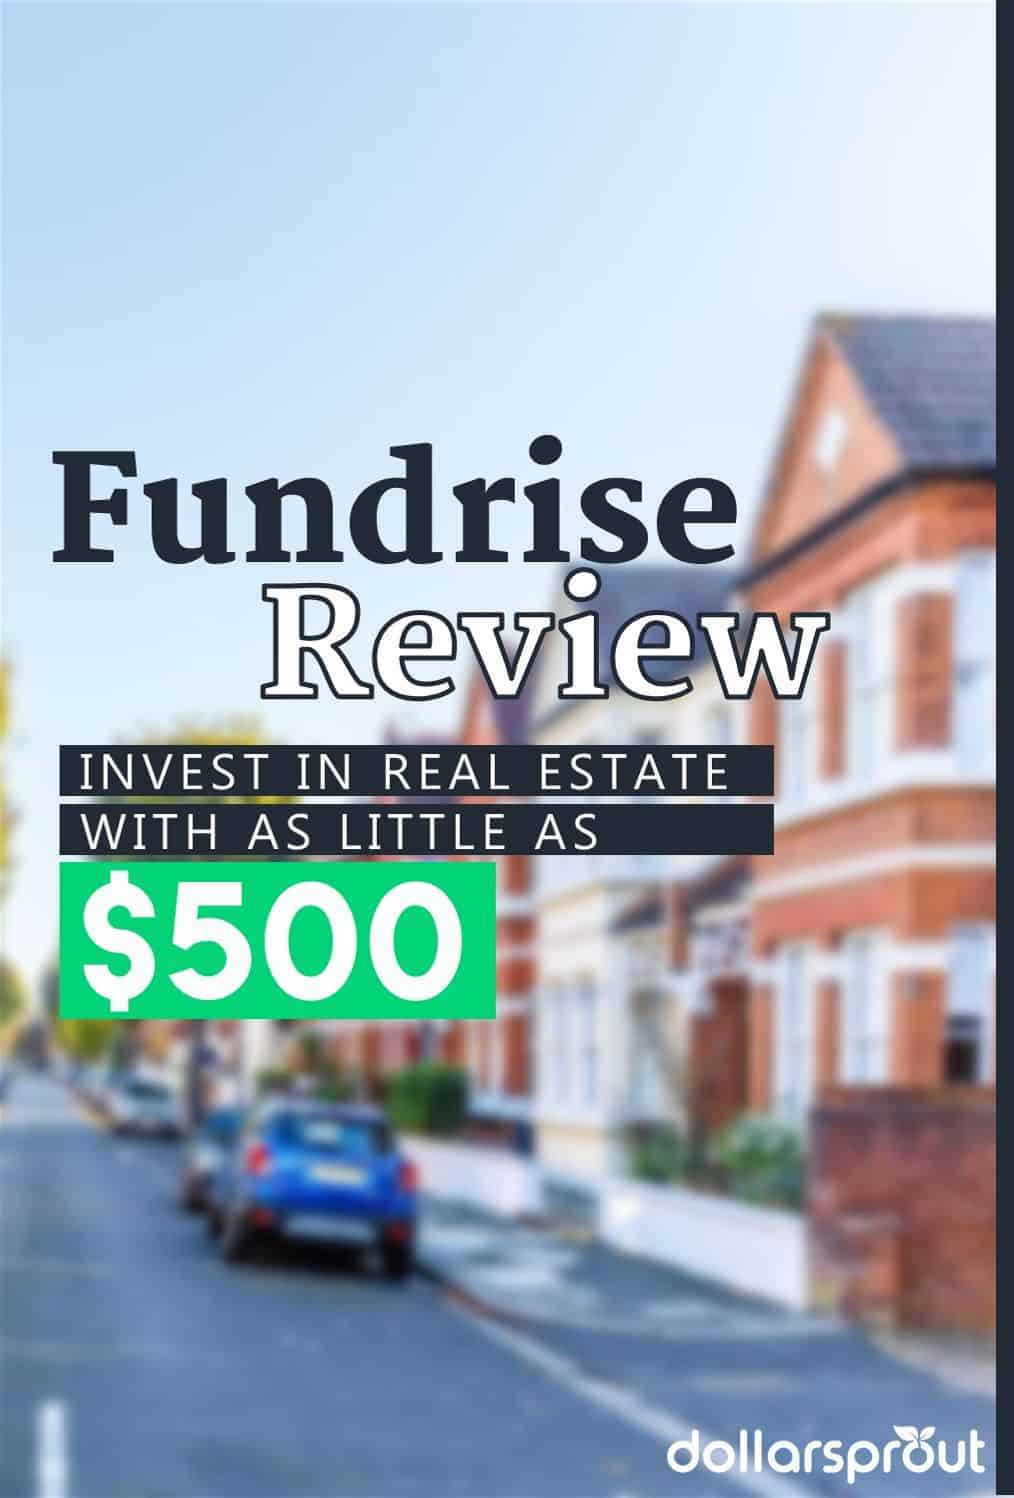 In this Fundrise review, we're going to show you how Fundrise works, what the potential returns and risks are, and help you determine whether a Fundrise investment is best for you.